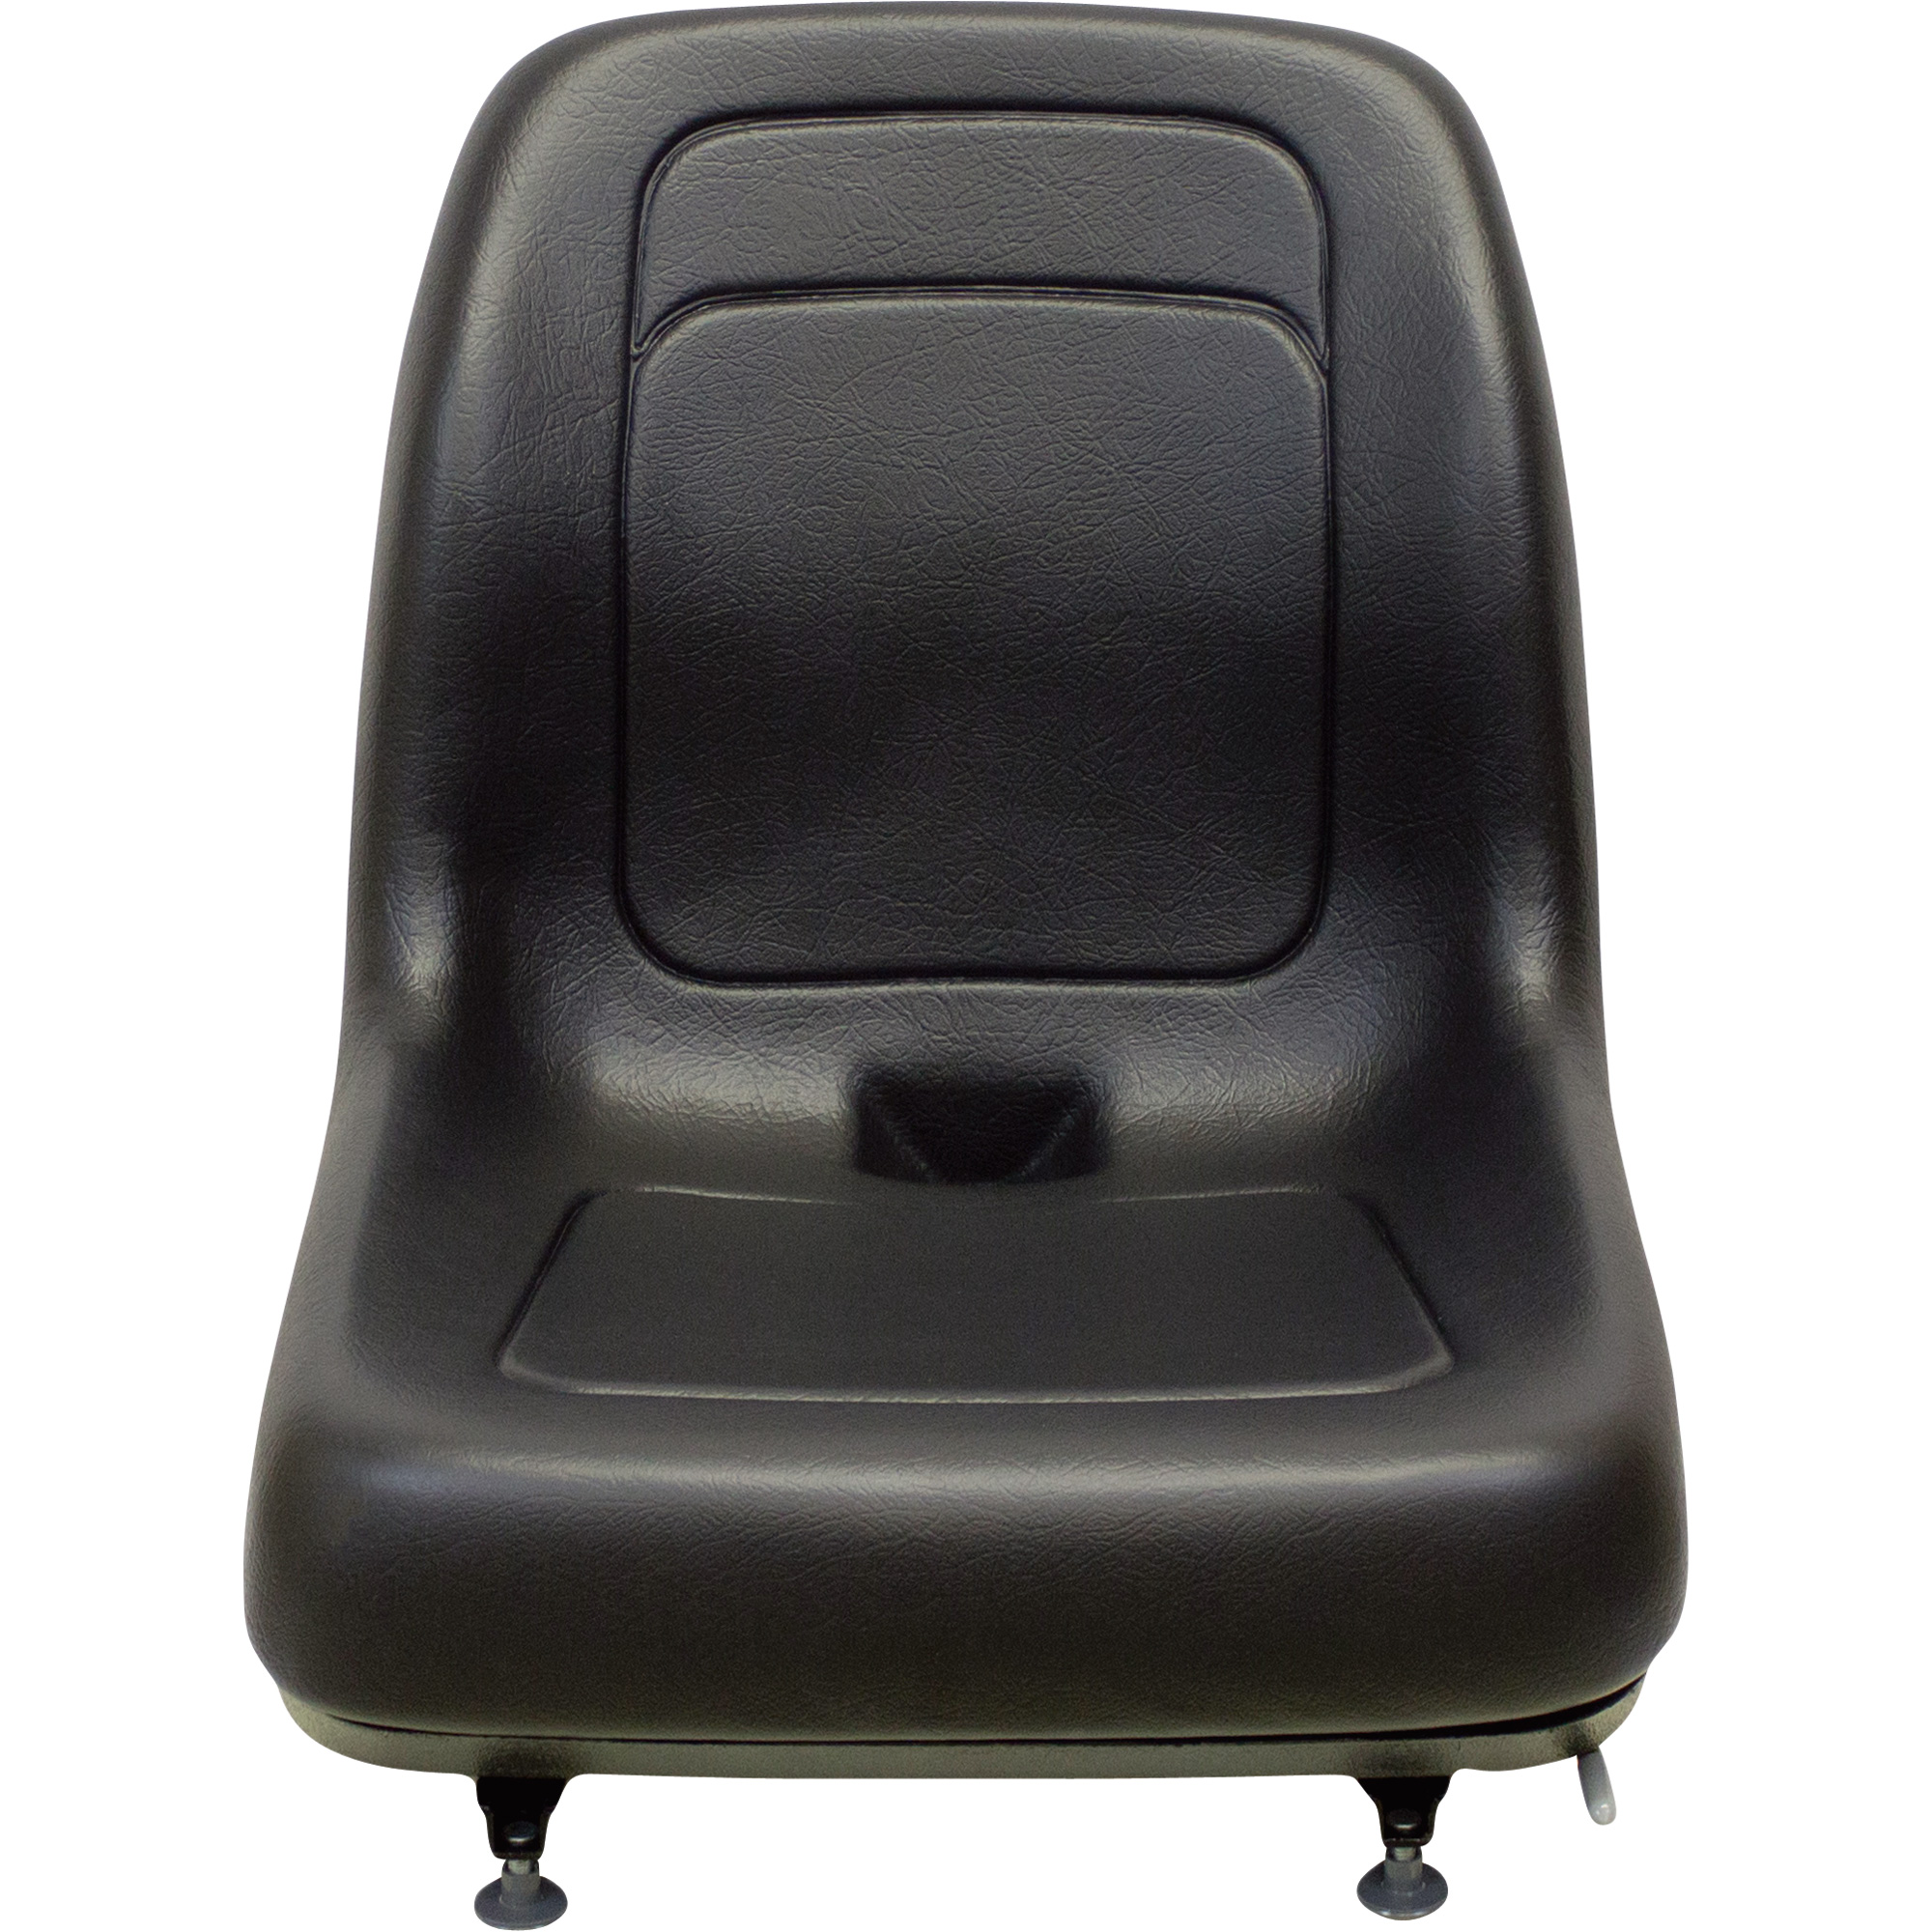 K And M Tractor Seats : K m uni pro universal tractor seat — black model